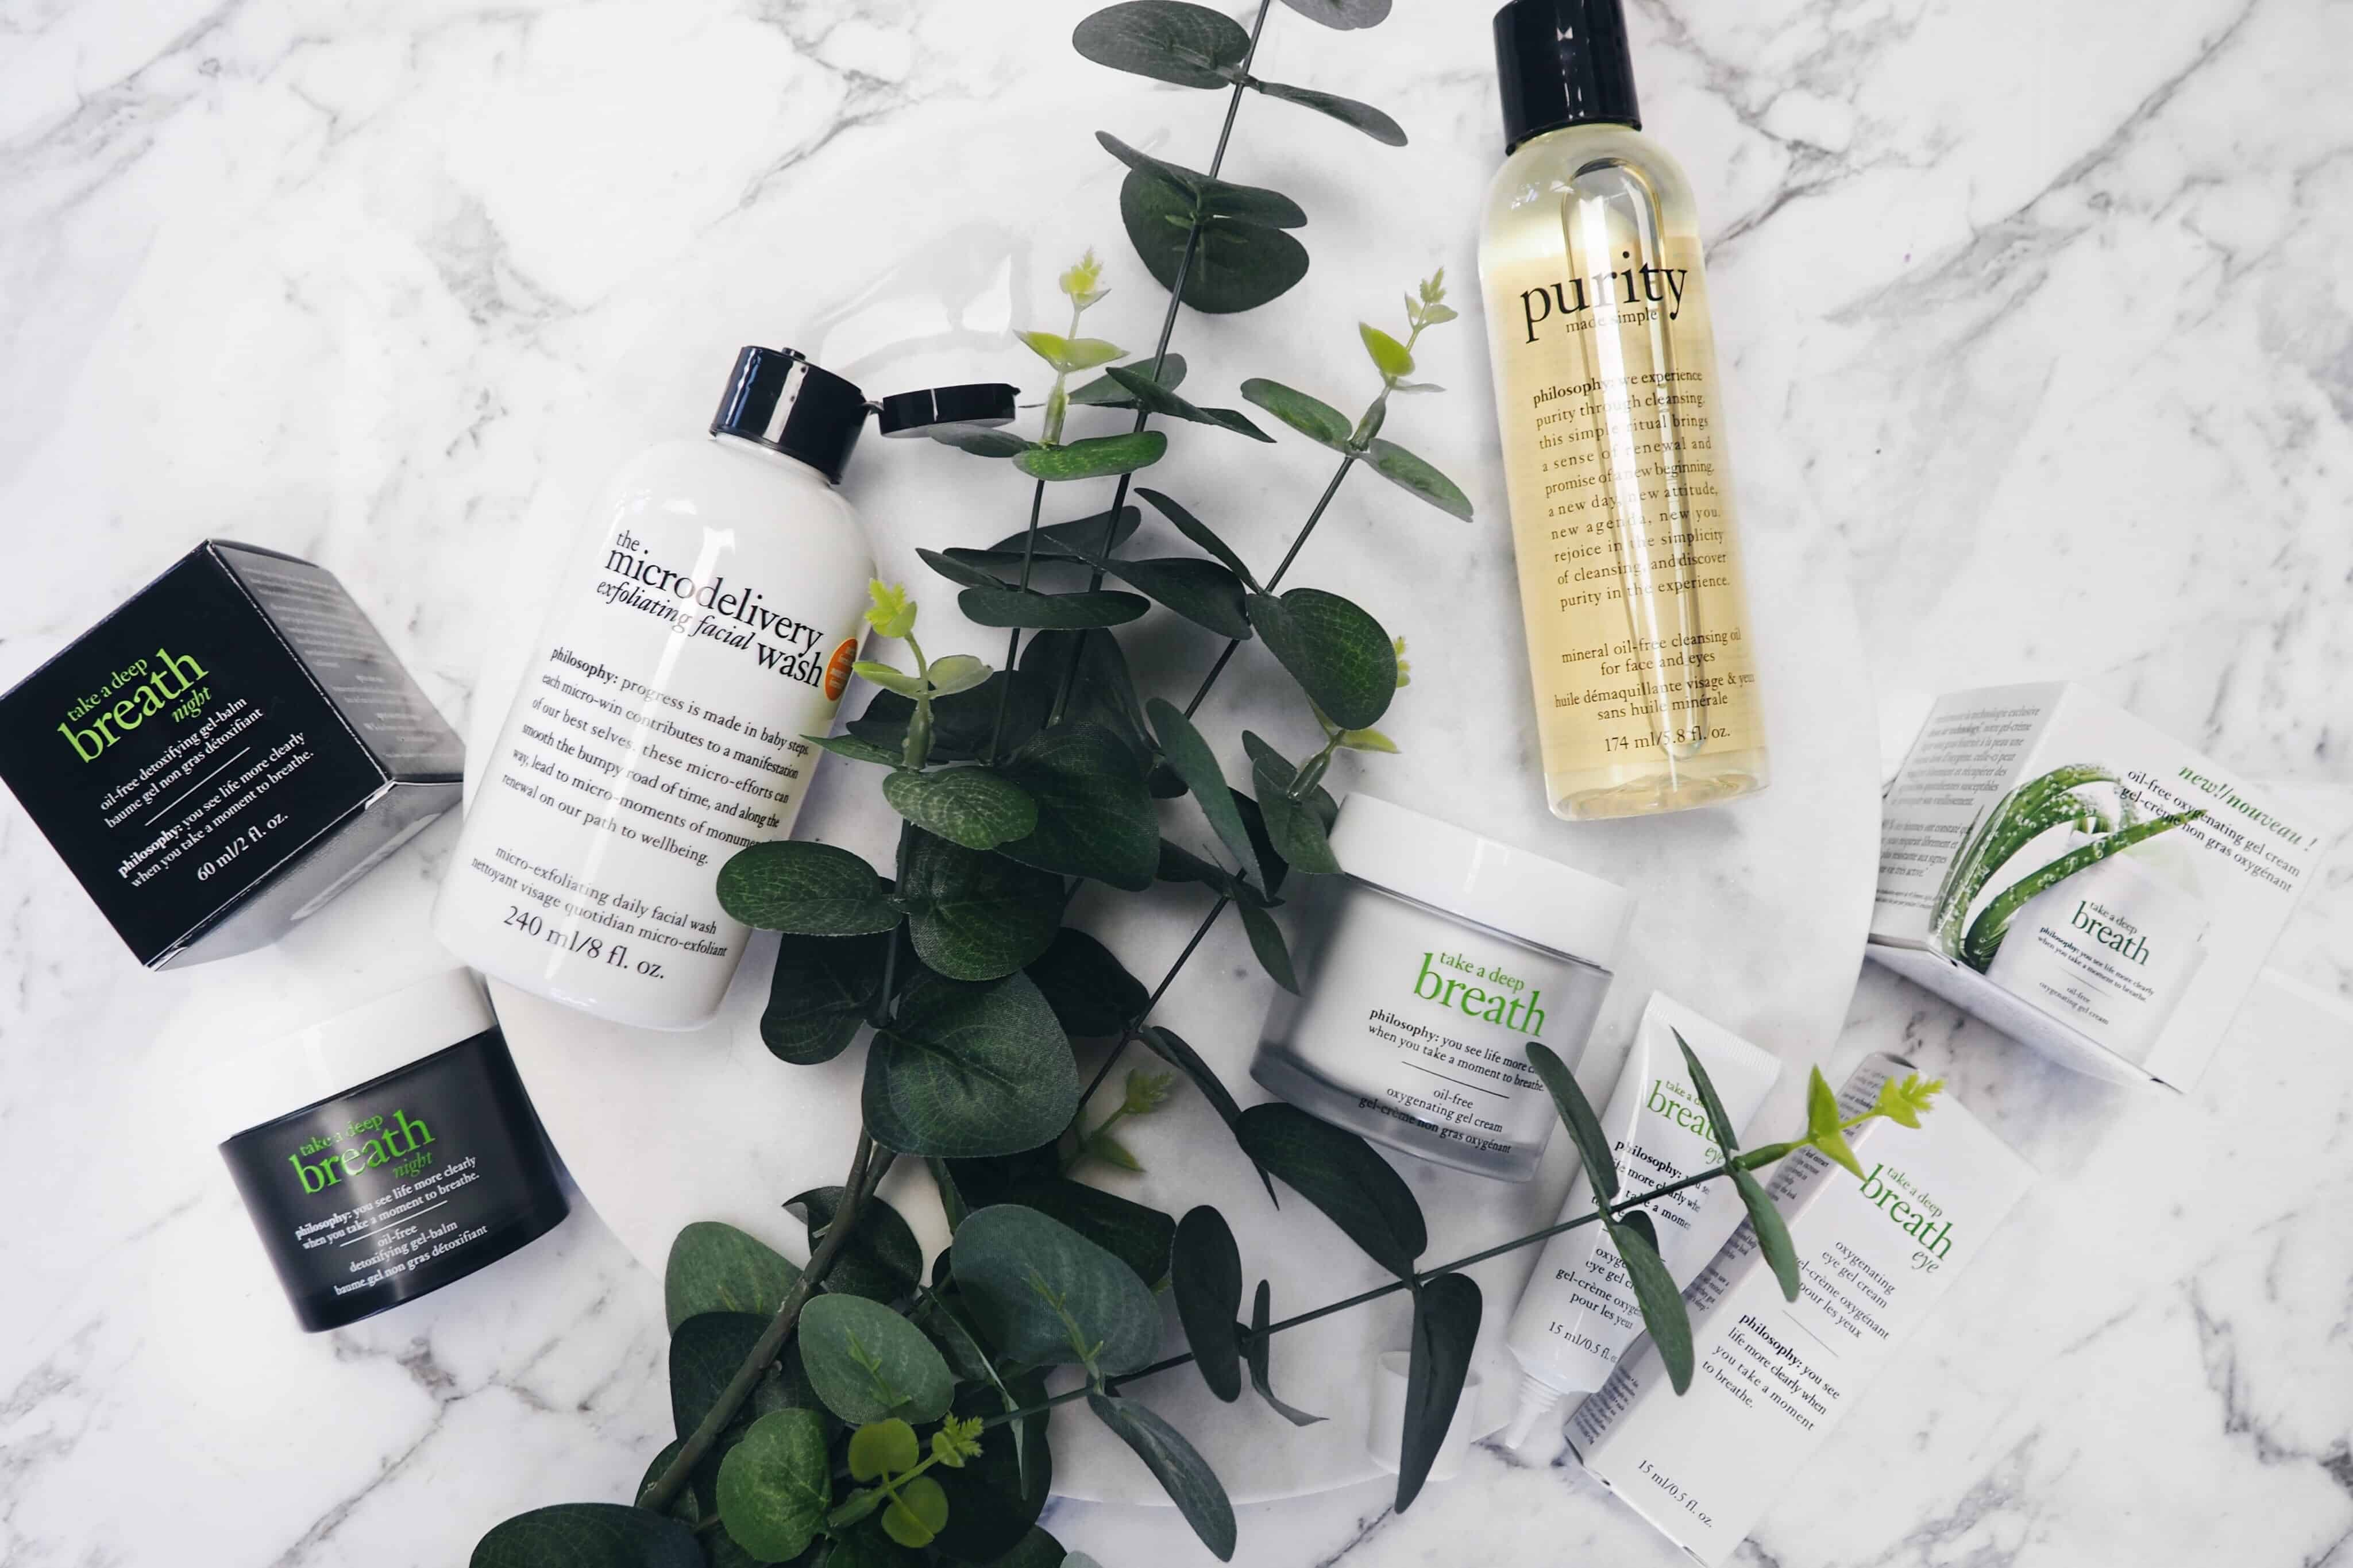 Philosophy skin care